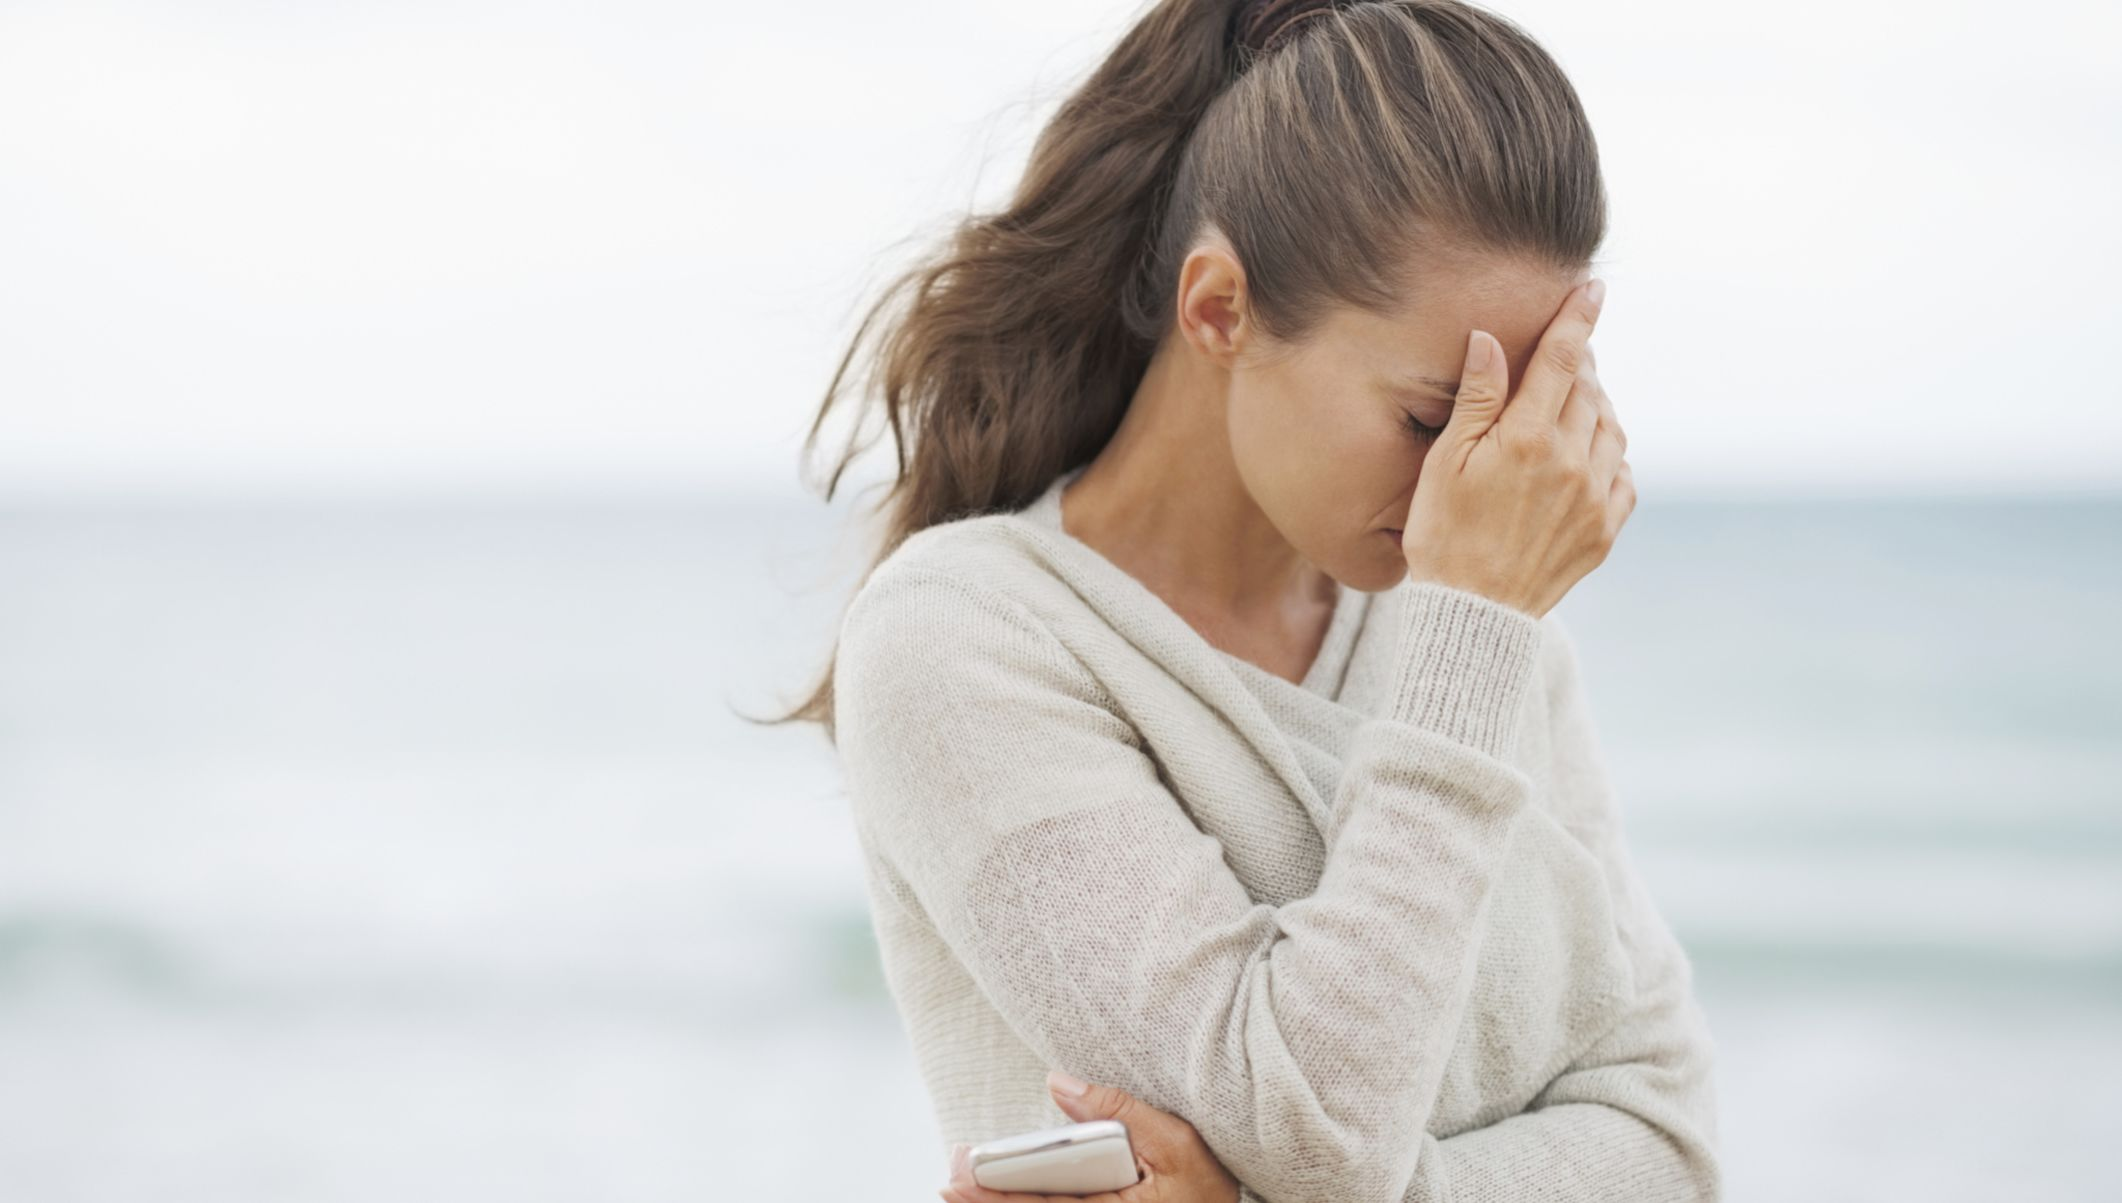 9 Ways Chronic Pain Impacts Quality of Life